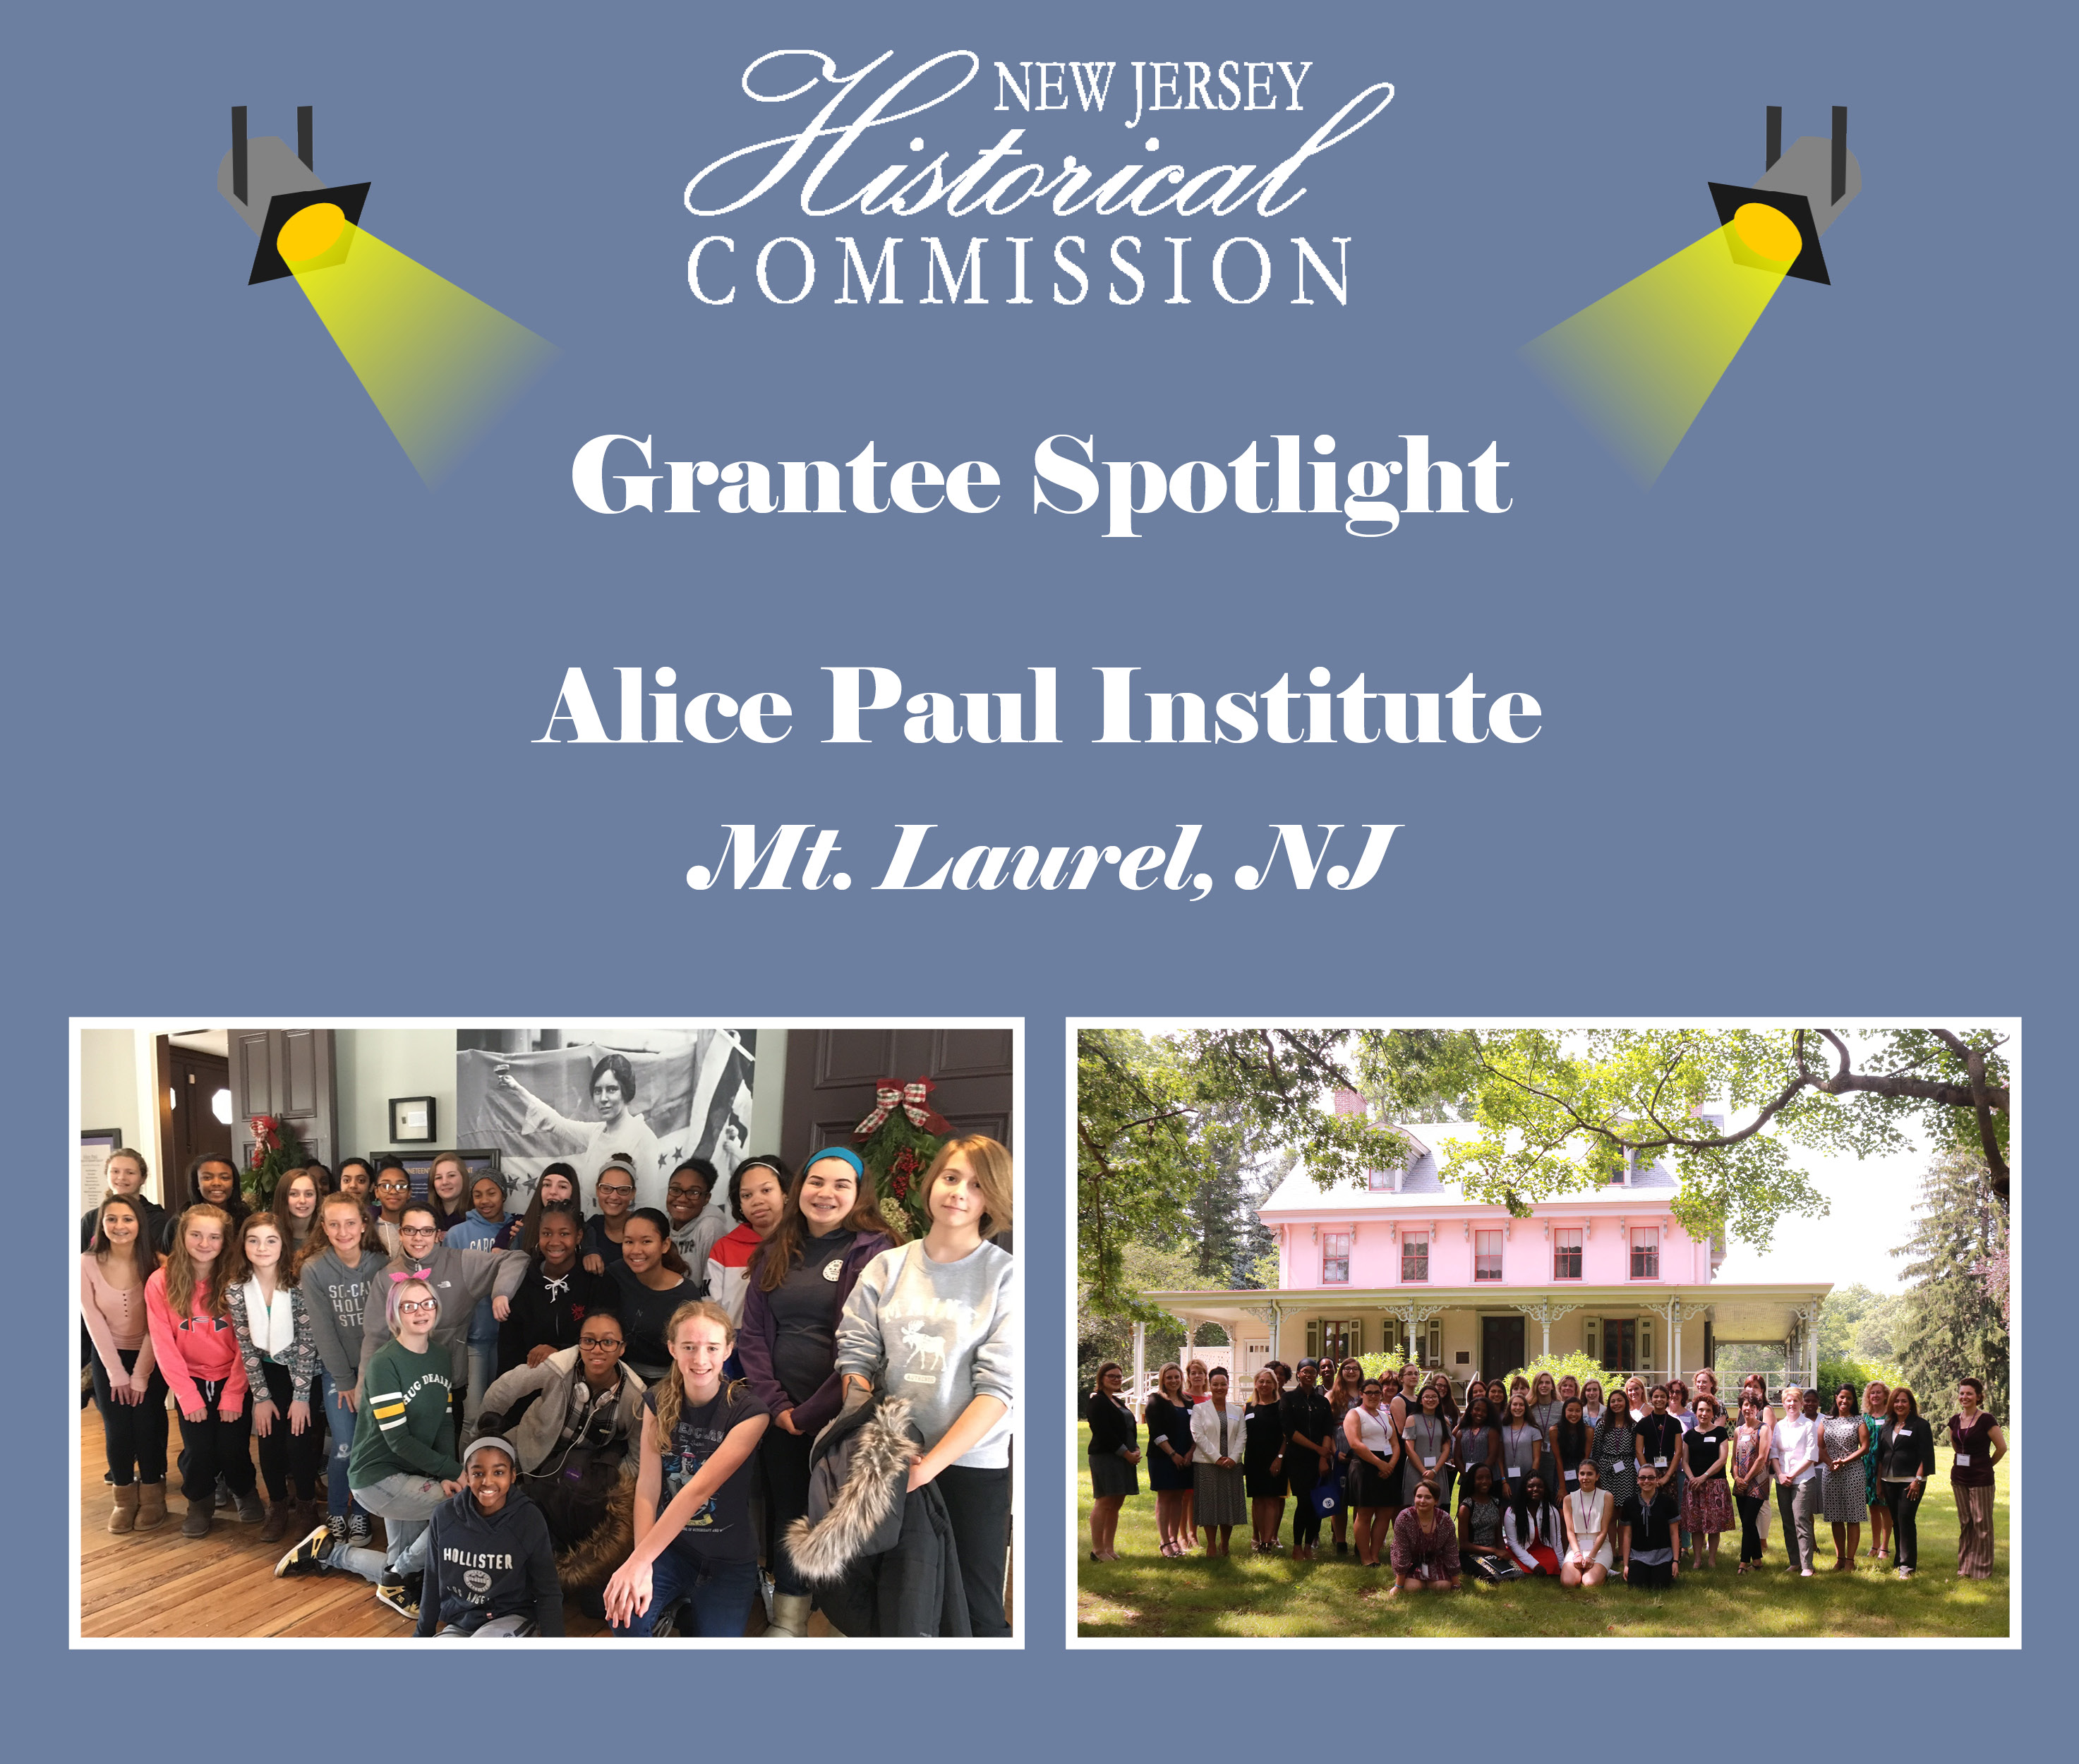 New Jersey Historical Commission (NJHC) Grantee Spotlight: Alice Paul Institute